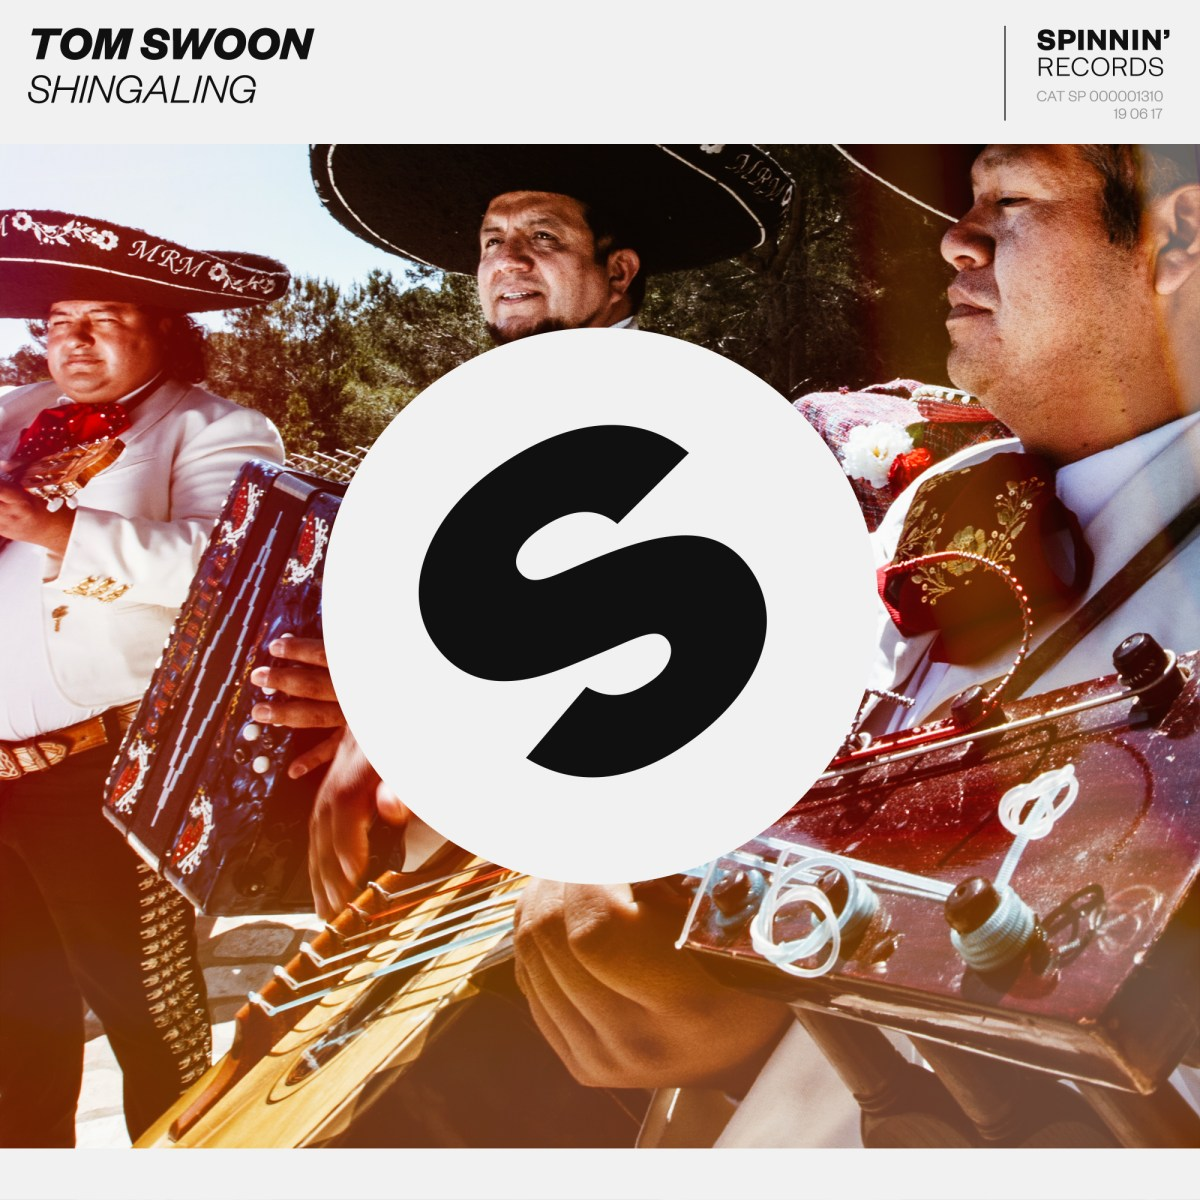 Tom Swoon - Shingaling [Spinnin' Records]